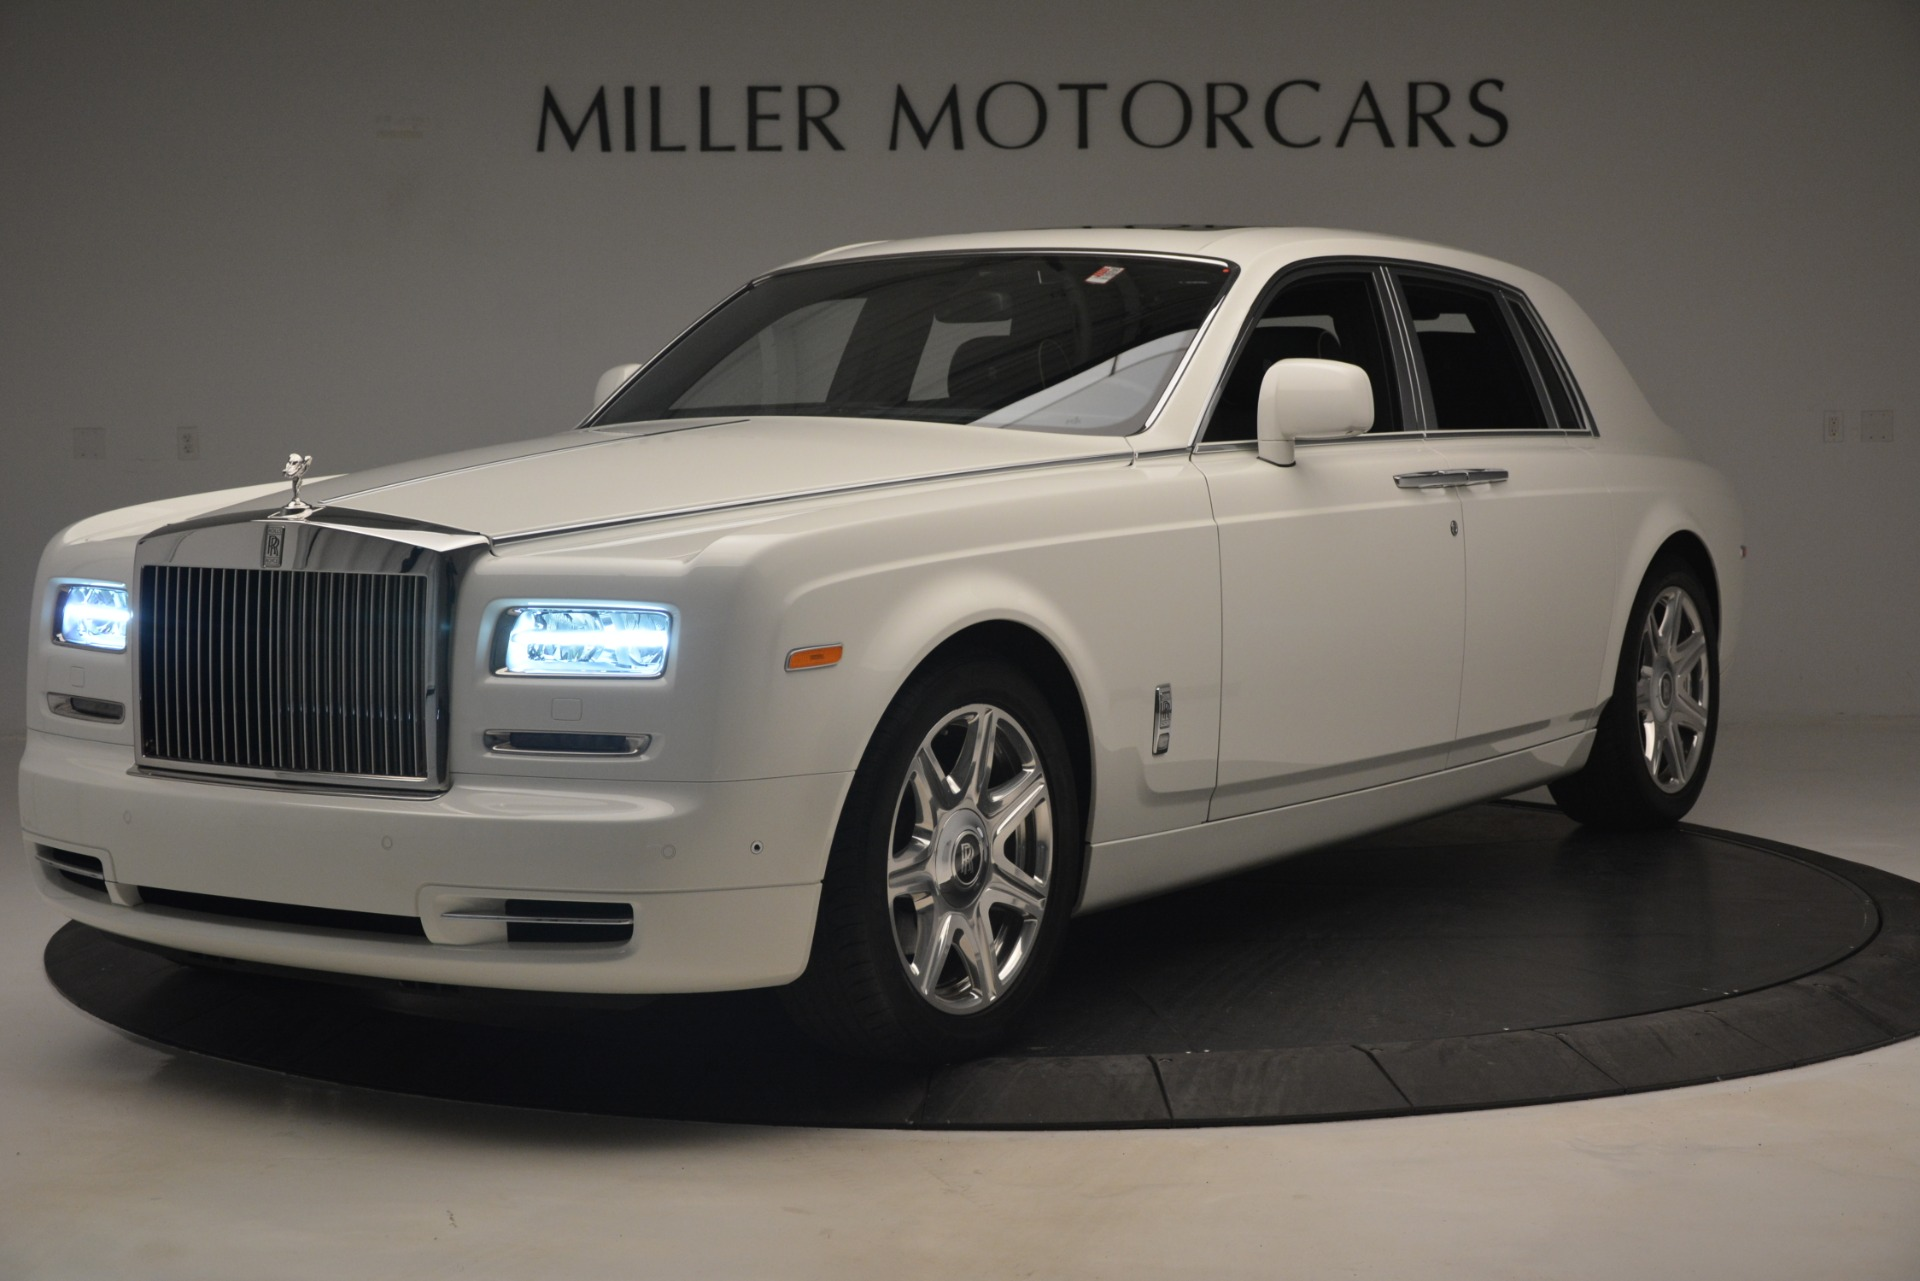 Used 2014 Rolls-Royce Phantom for sale Sold at Bugatti of Greenwich in Greenwich CT 06830 1